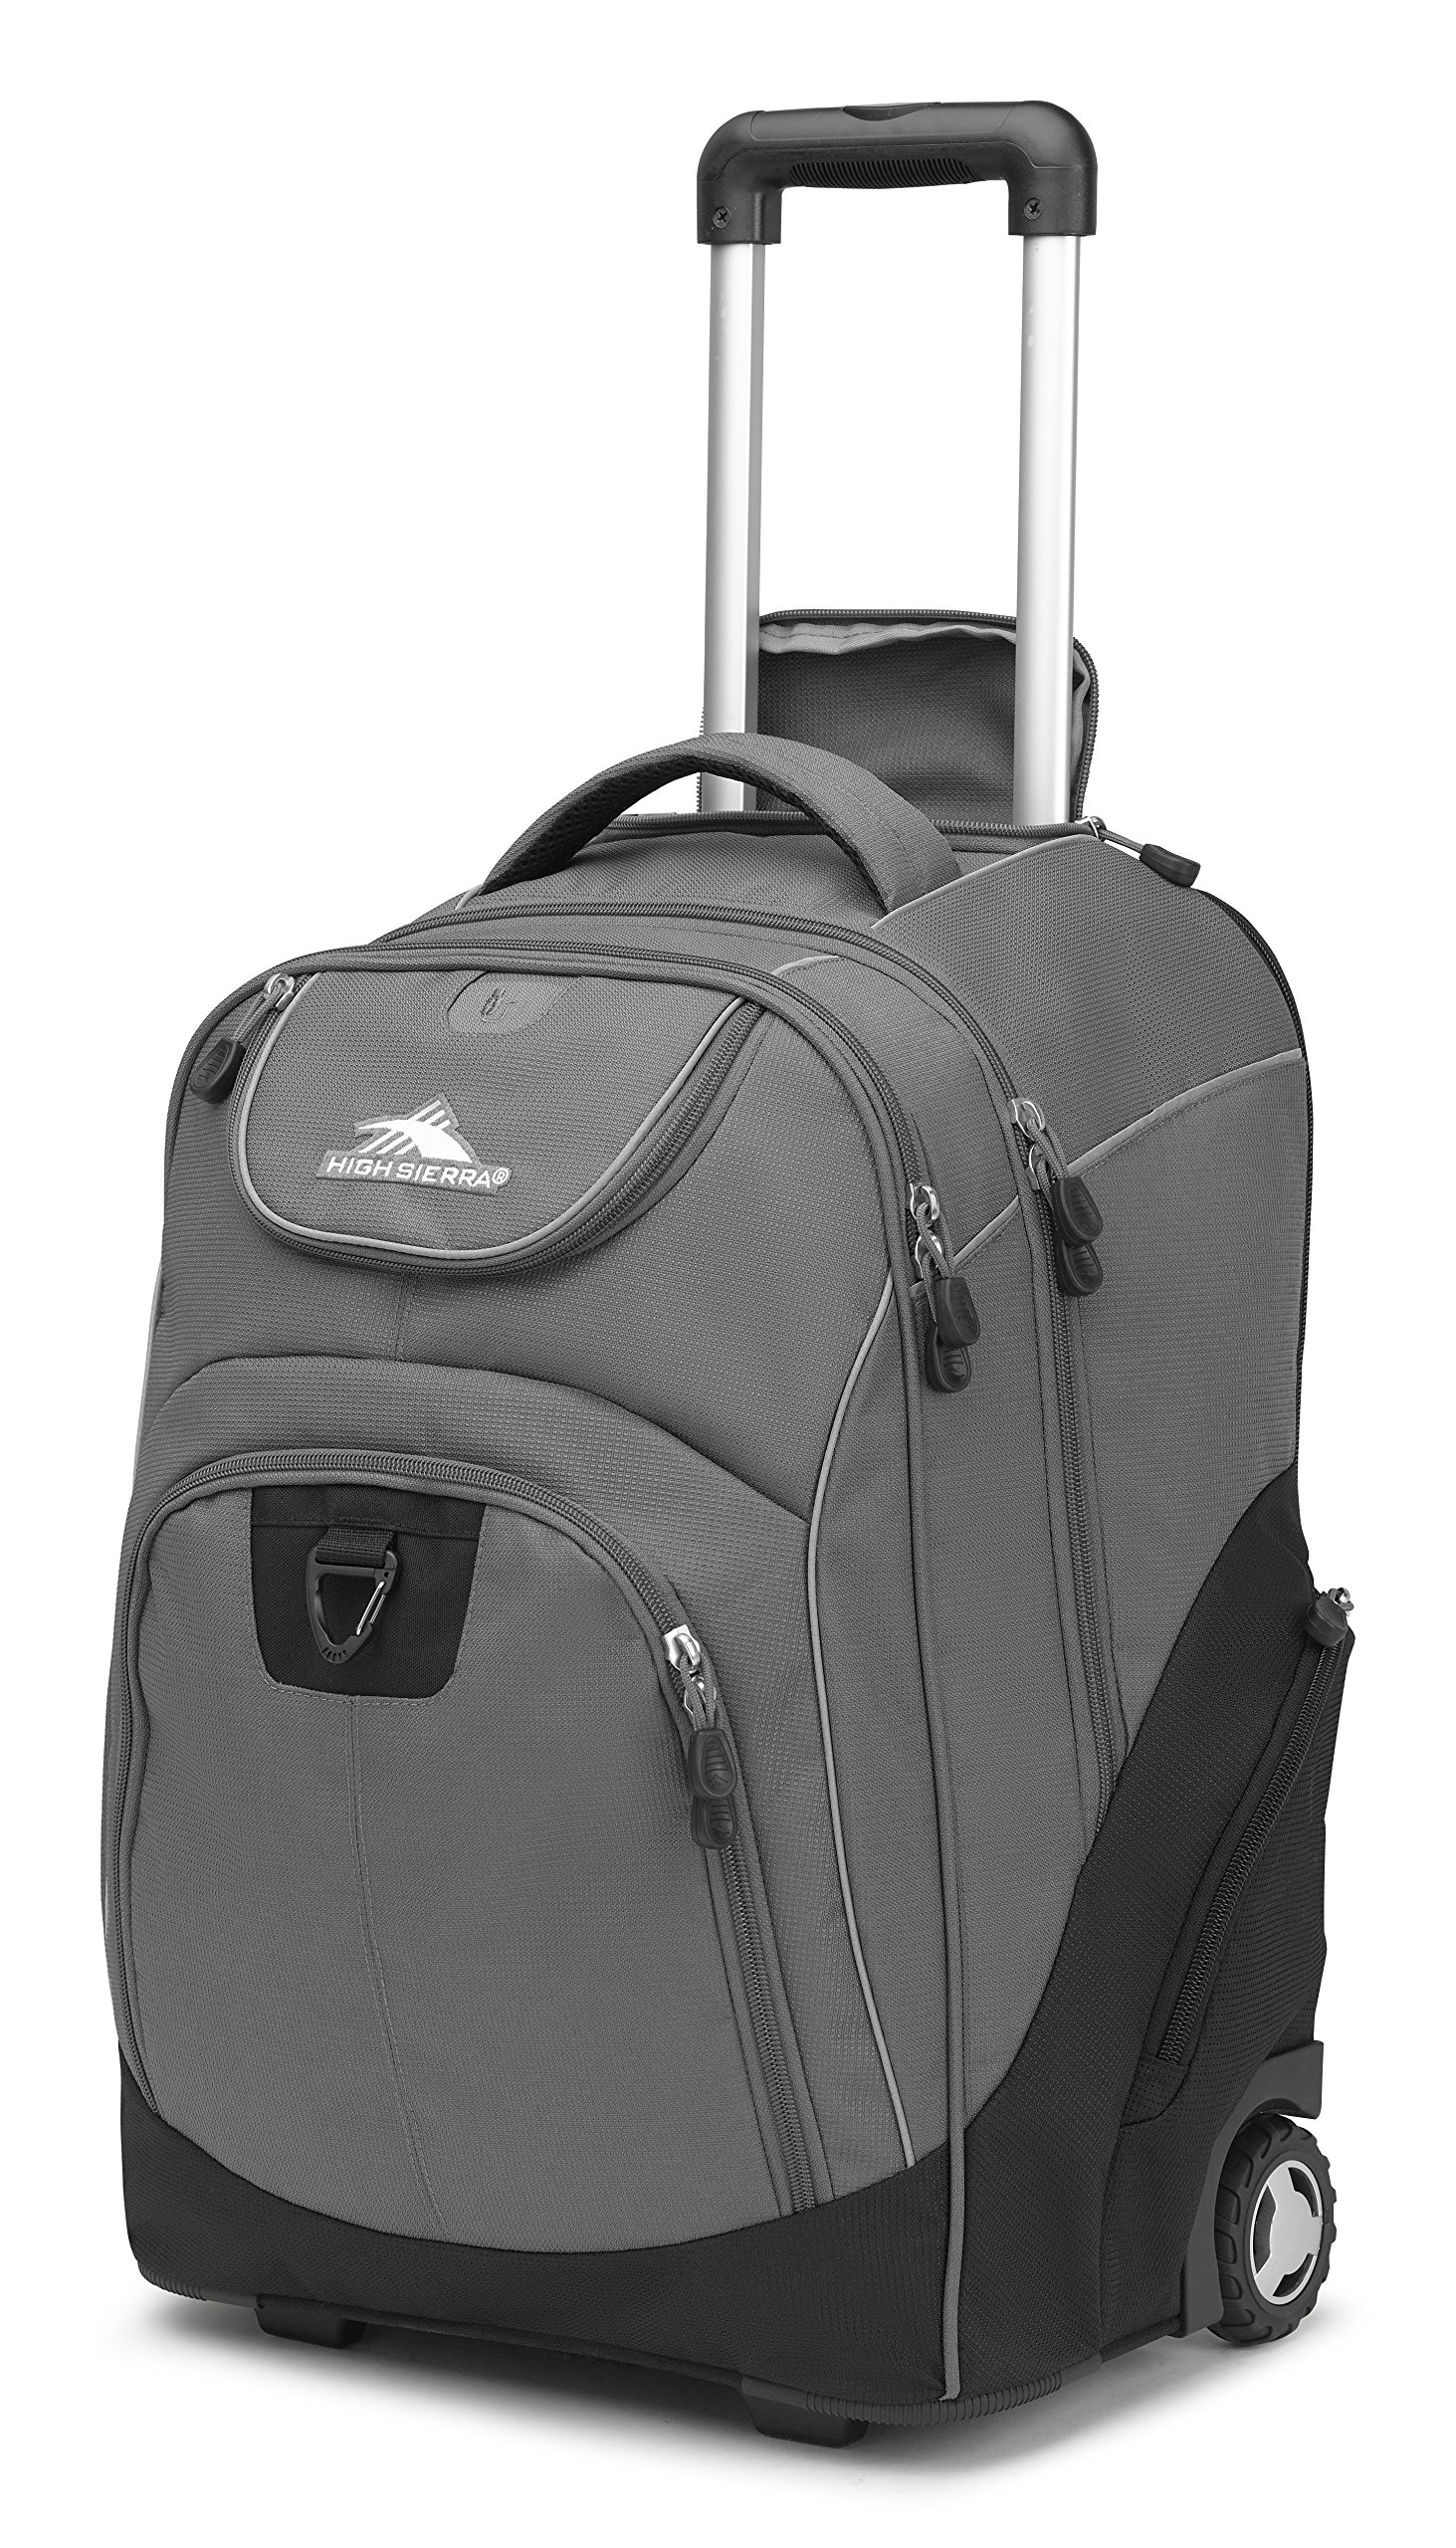 High Sierra Powerglide Wheeled Laptop Backpack, Slate/Black